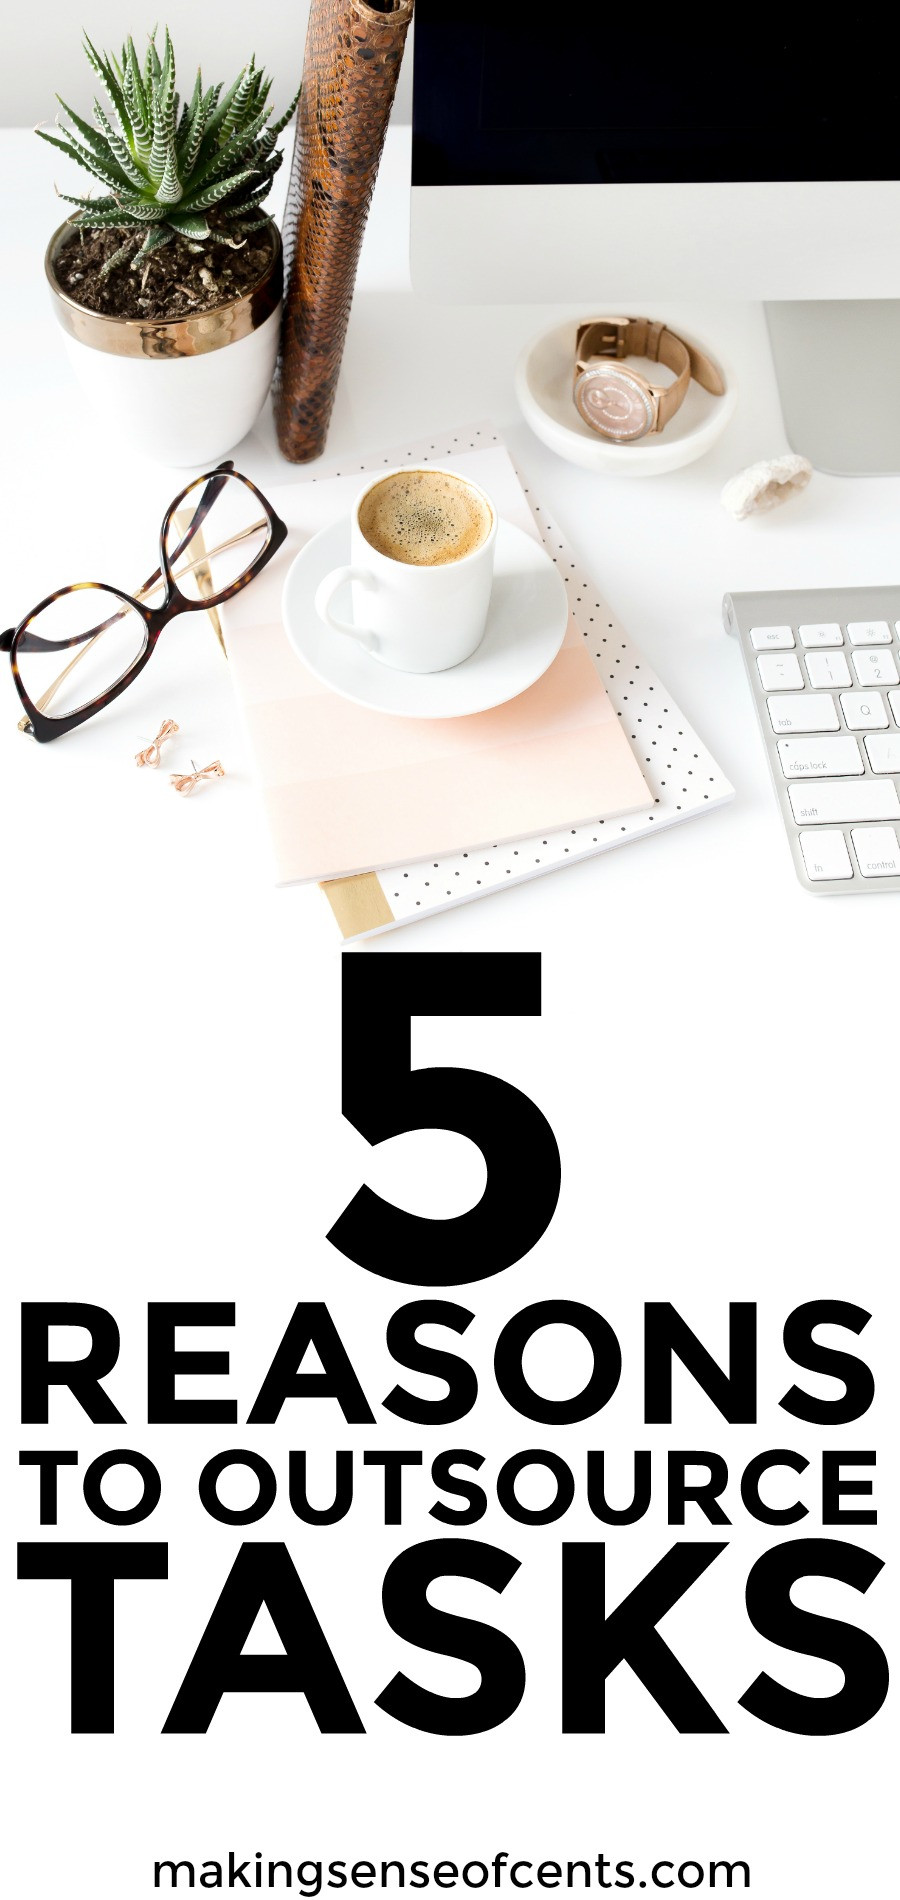 Check out this list of 5 reasons to outsource tasks. This is a great list!